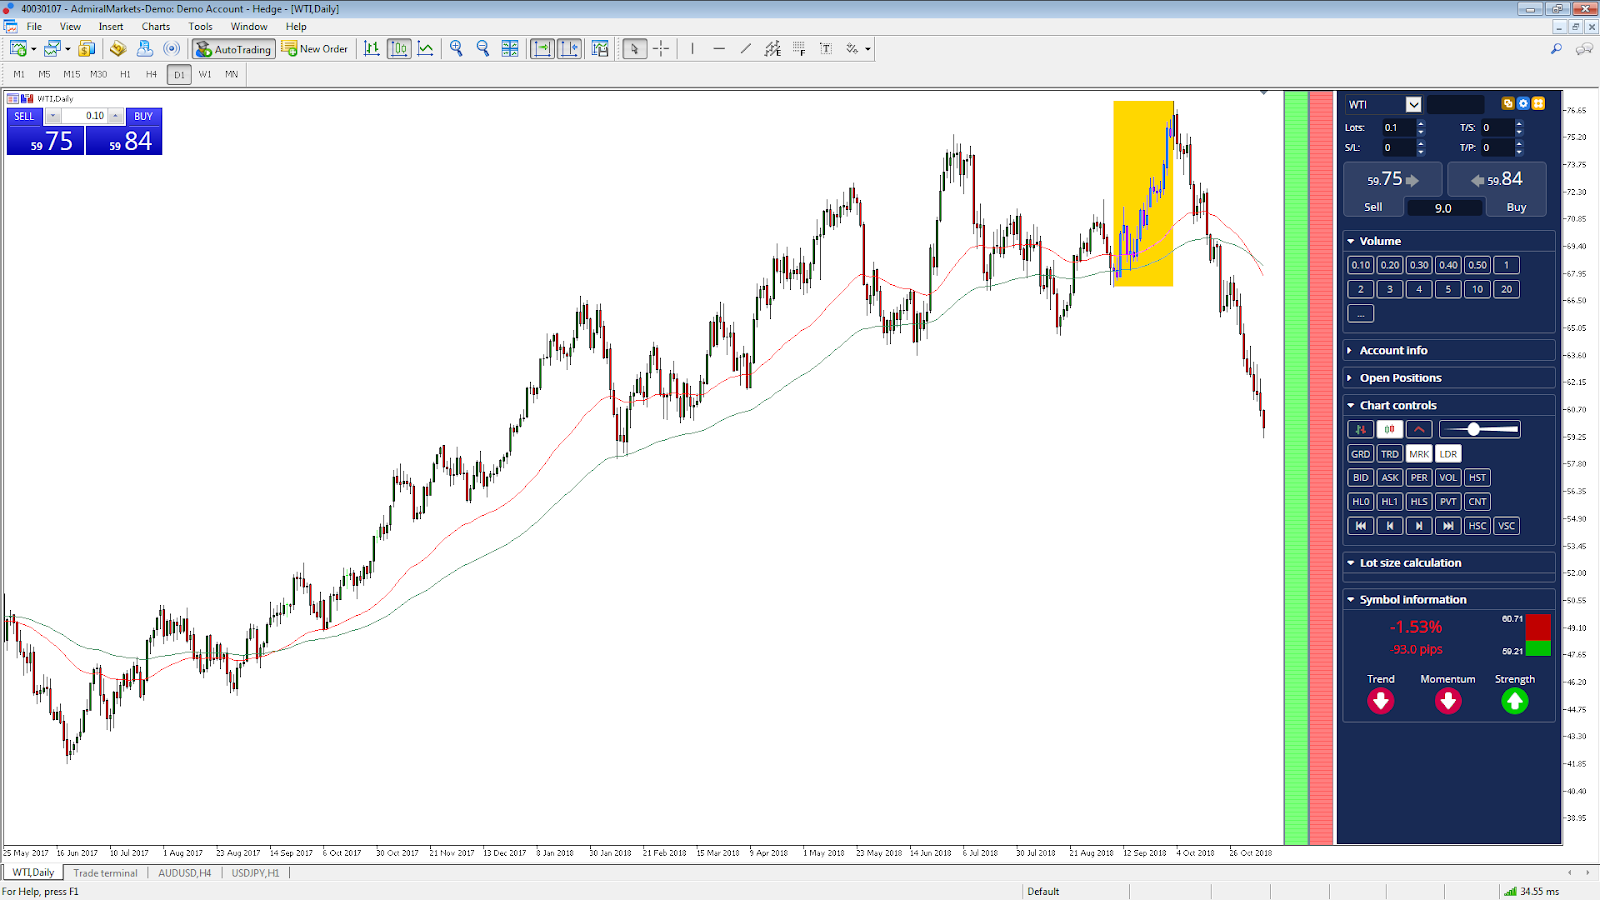 WTI Oil Daily Chart